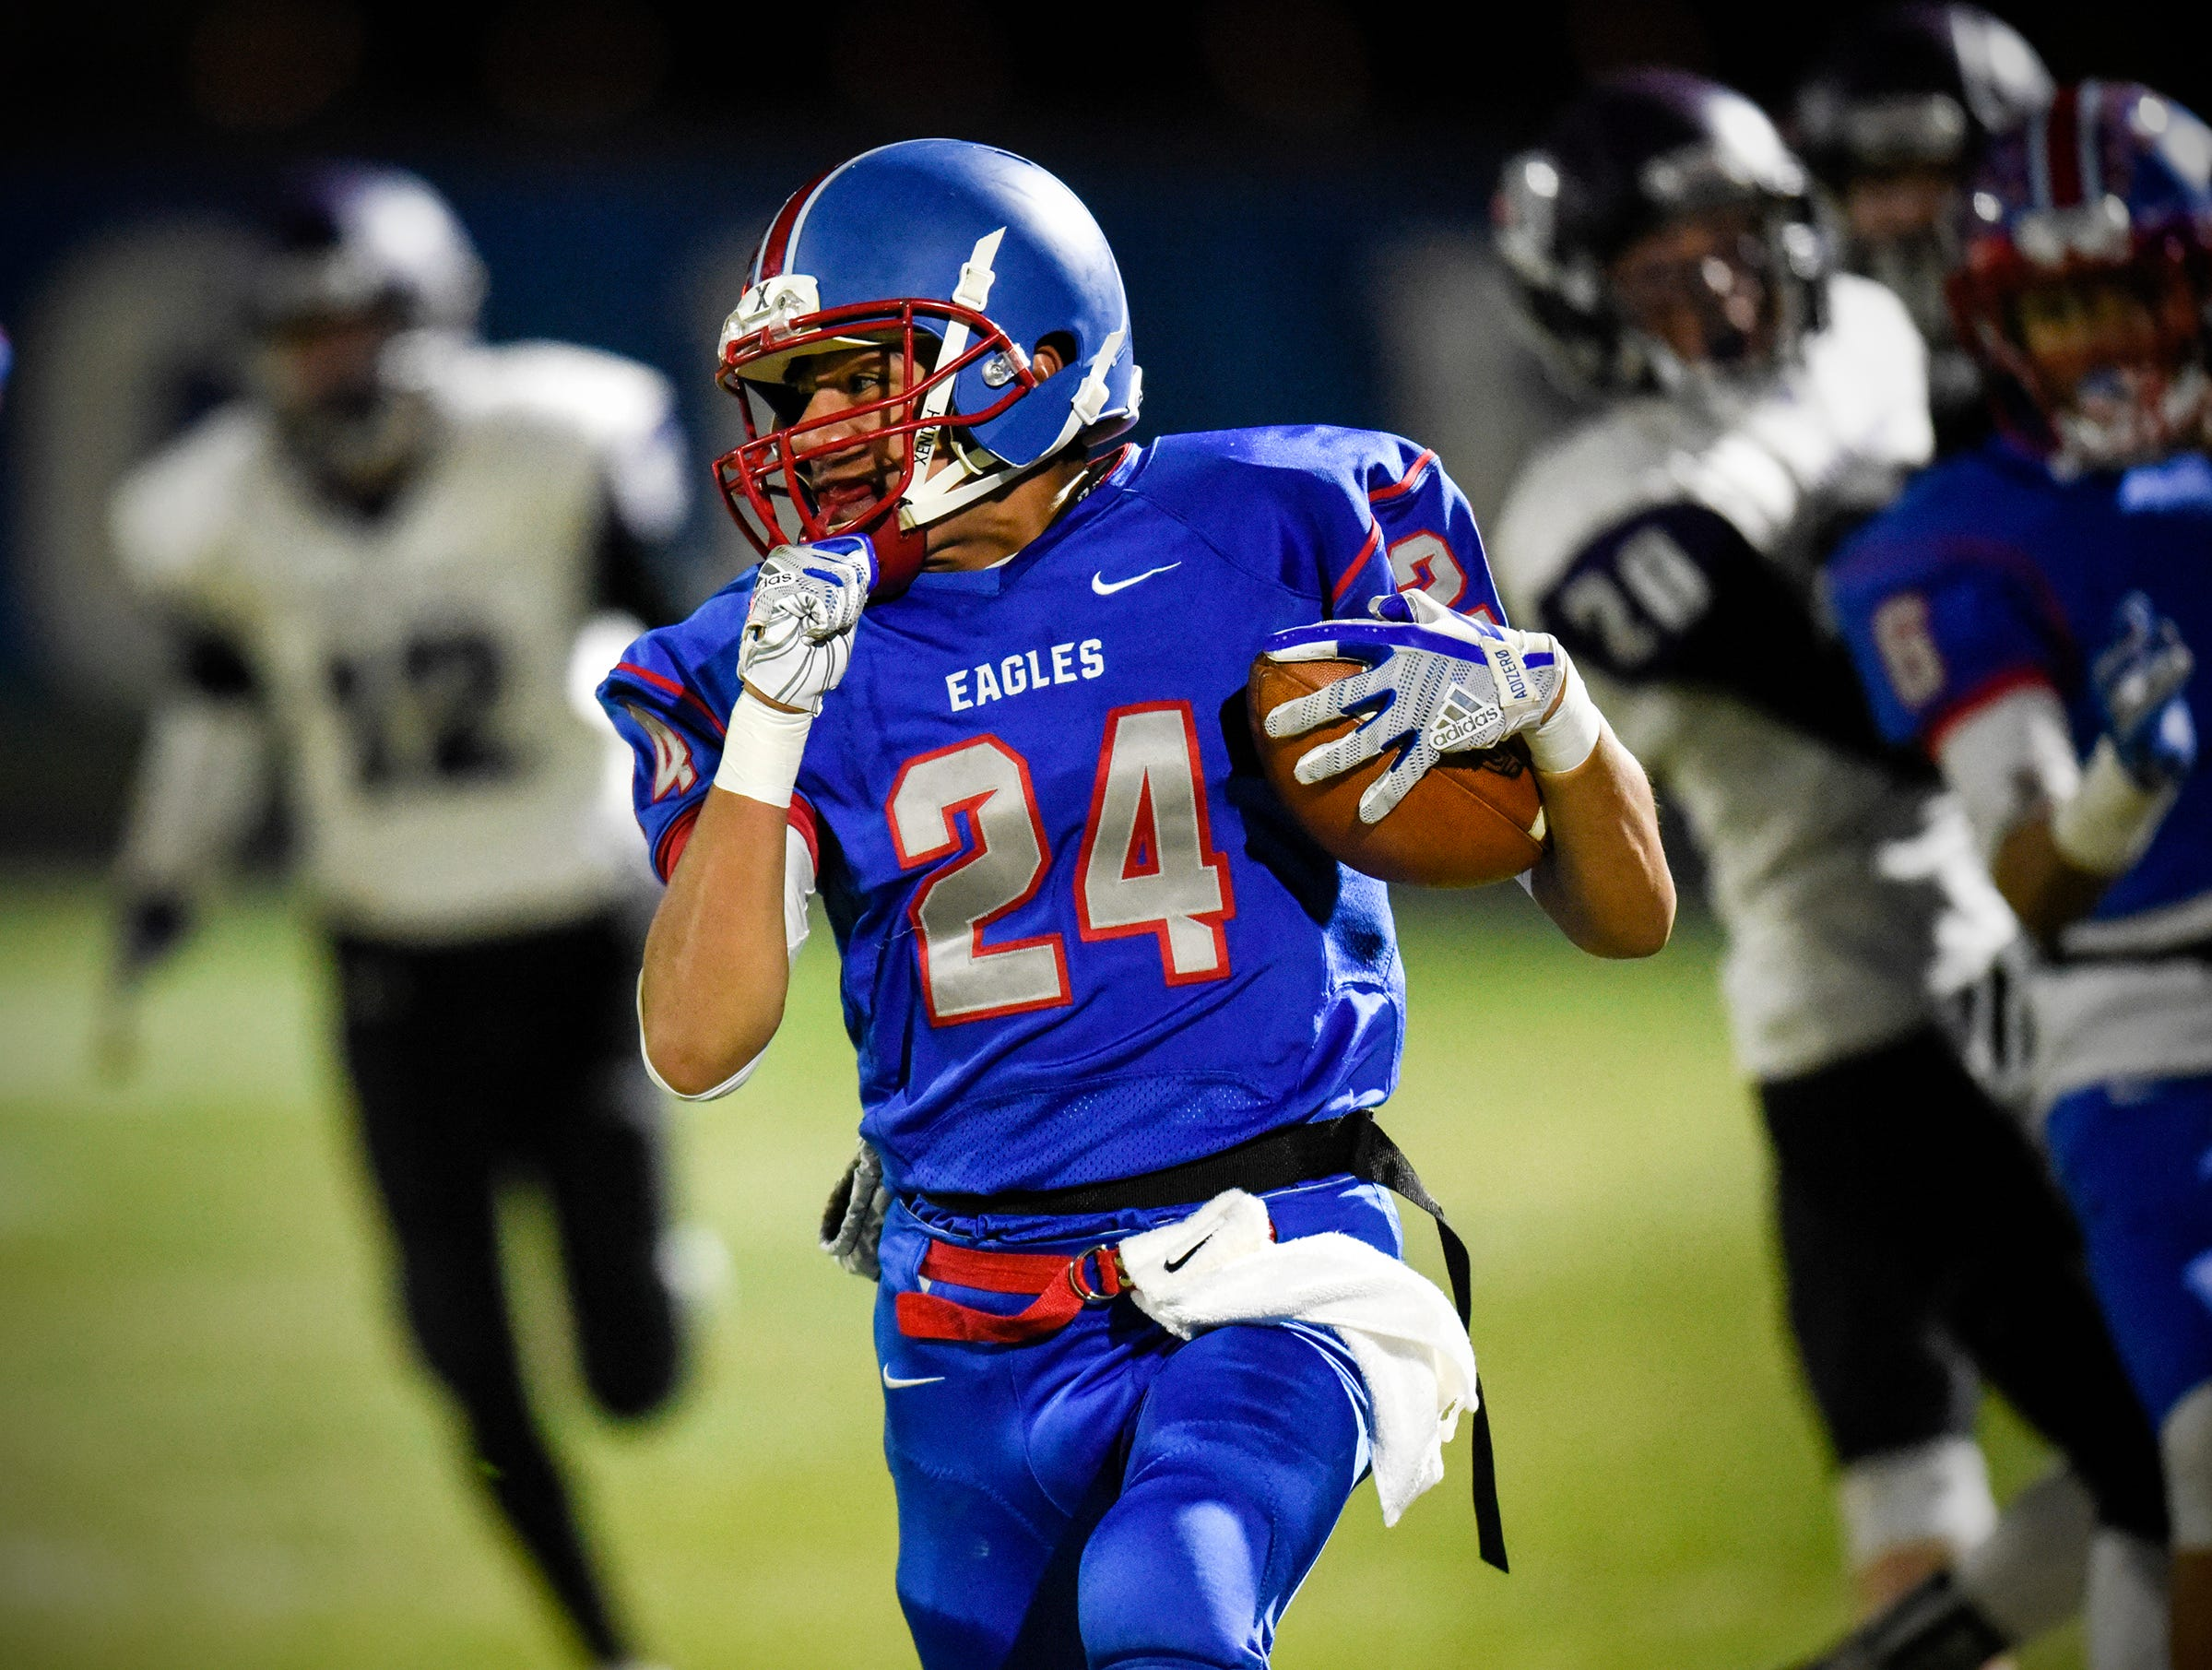 Apollo's Likas Theisen rushes with the football during the Tuesday, Oct. 23, game against Little Falls in St. Cloud.